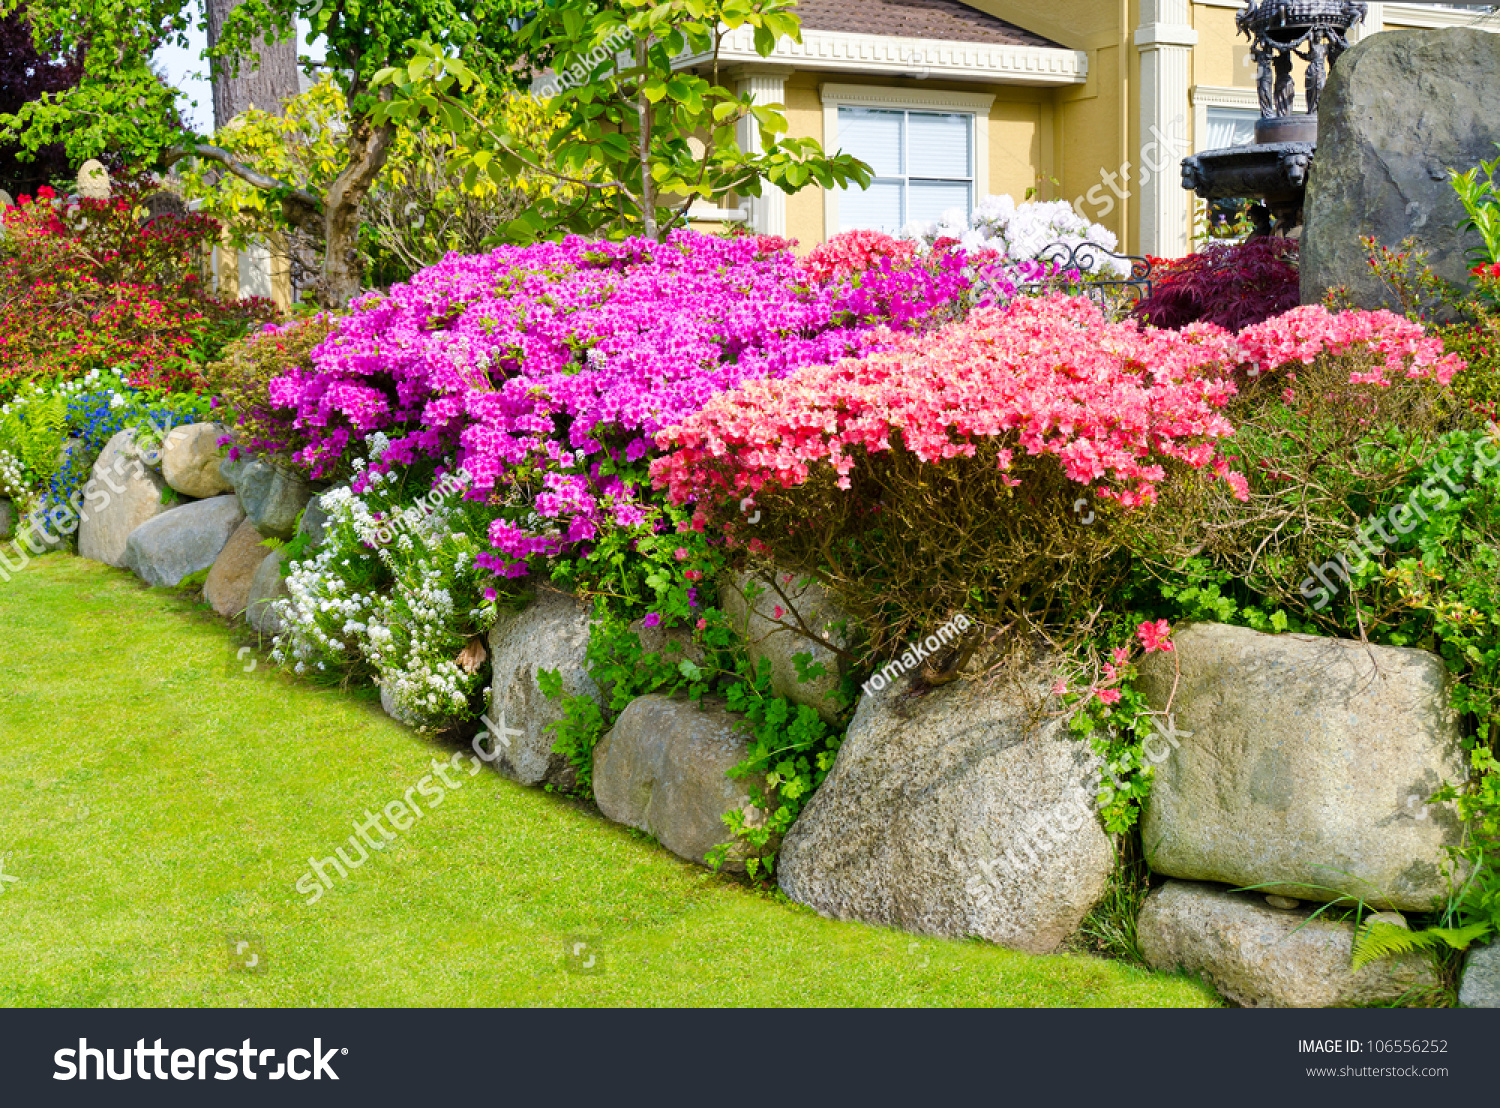 Flowers and stones in front of the house front yard for Plants for the front yard landscape